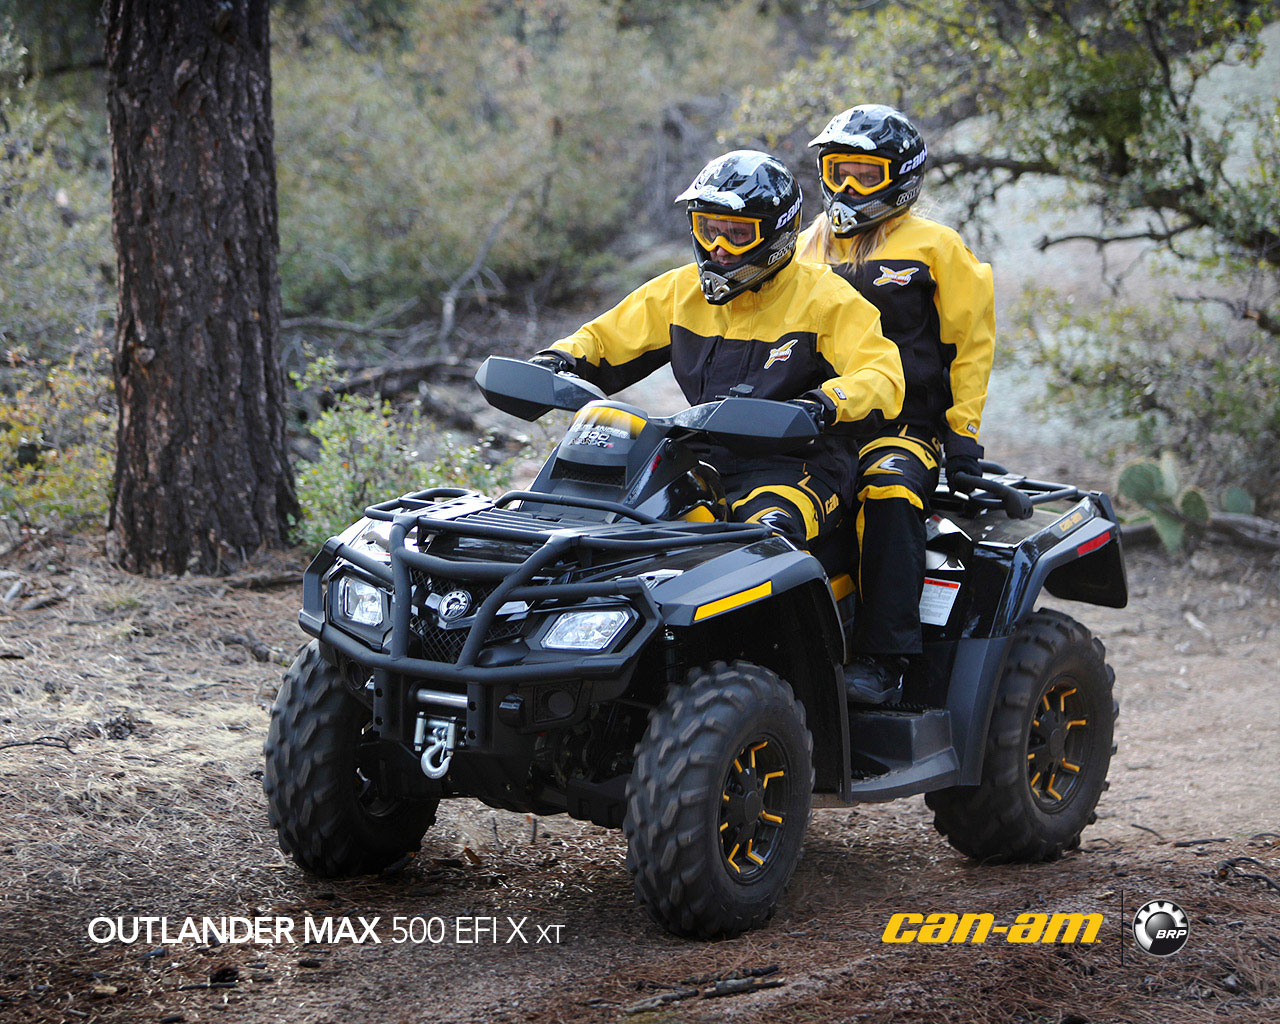 CAN-AM/ BRP Outlander MAX 500 XT Photo Gallery #2/4